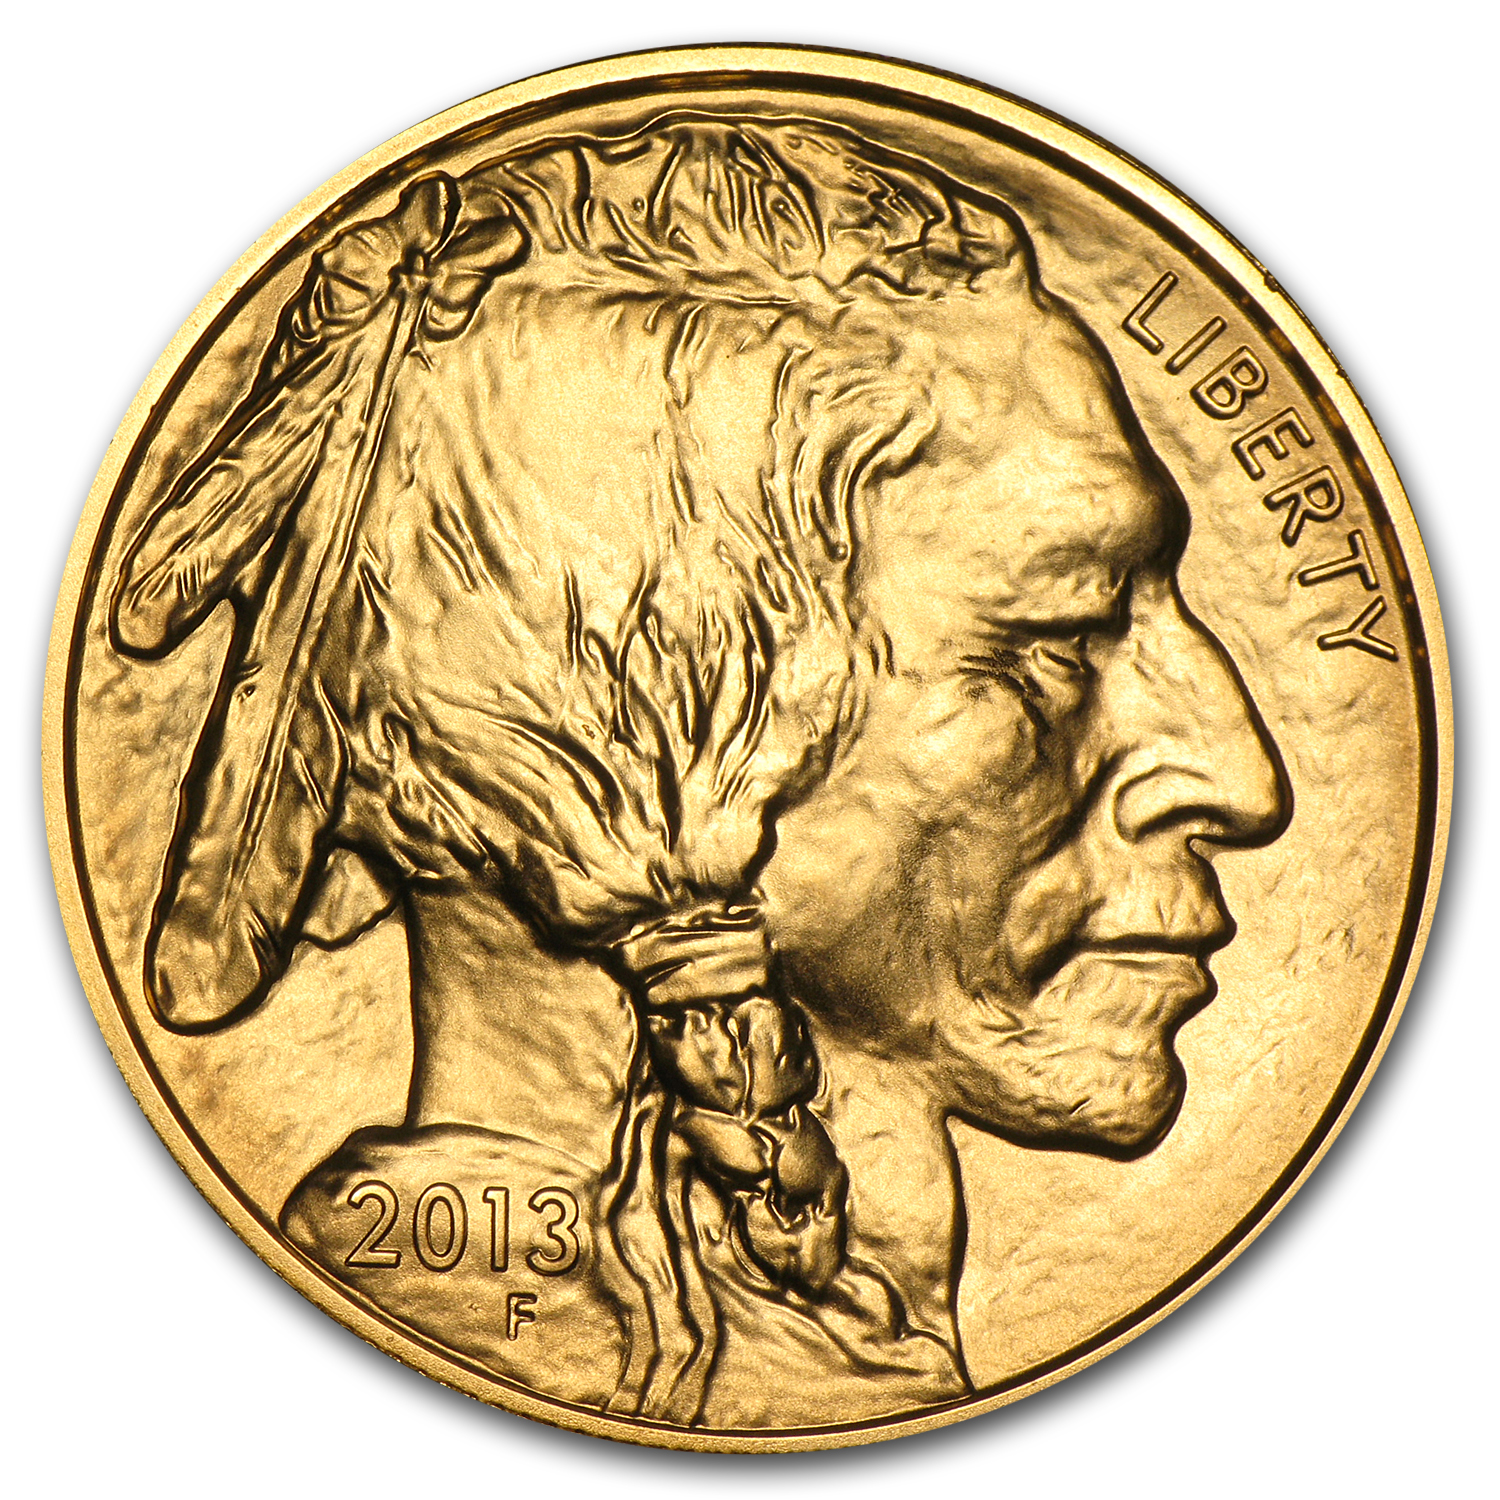 2013 1 oz Gold Buffalo - Brilliant Uncirculated